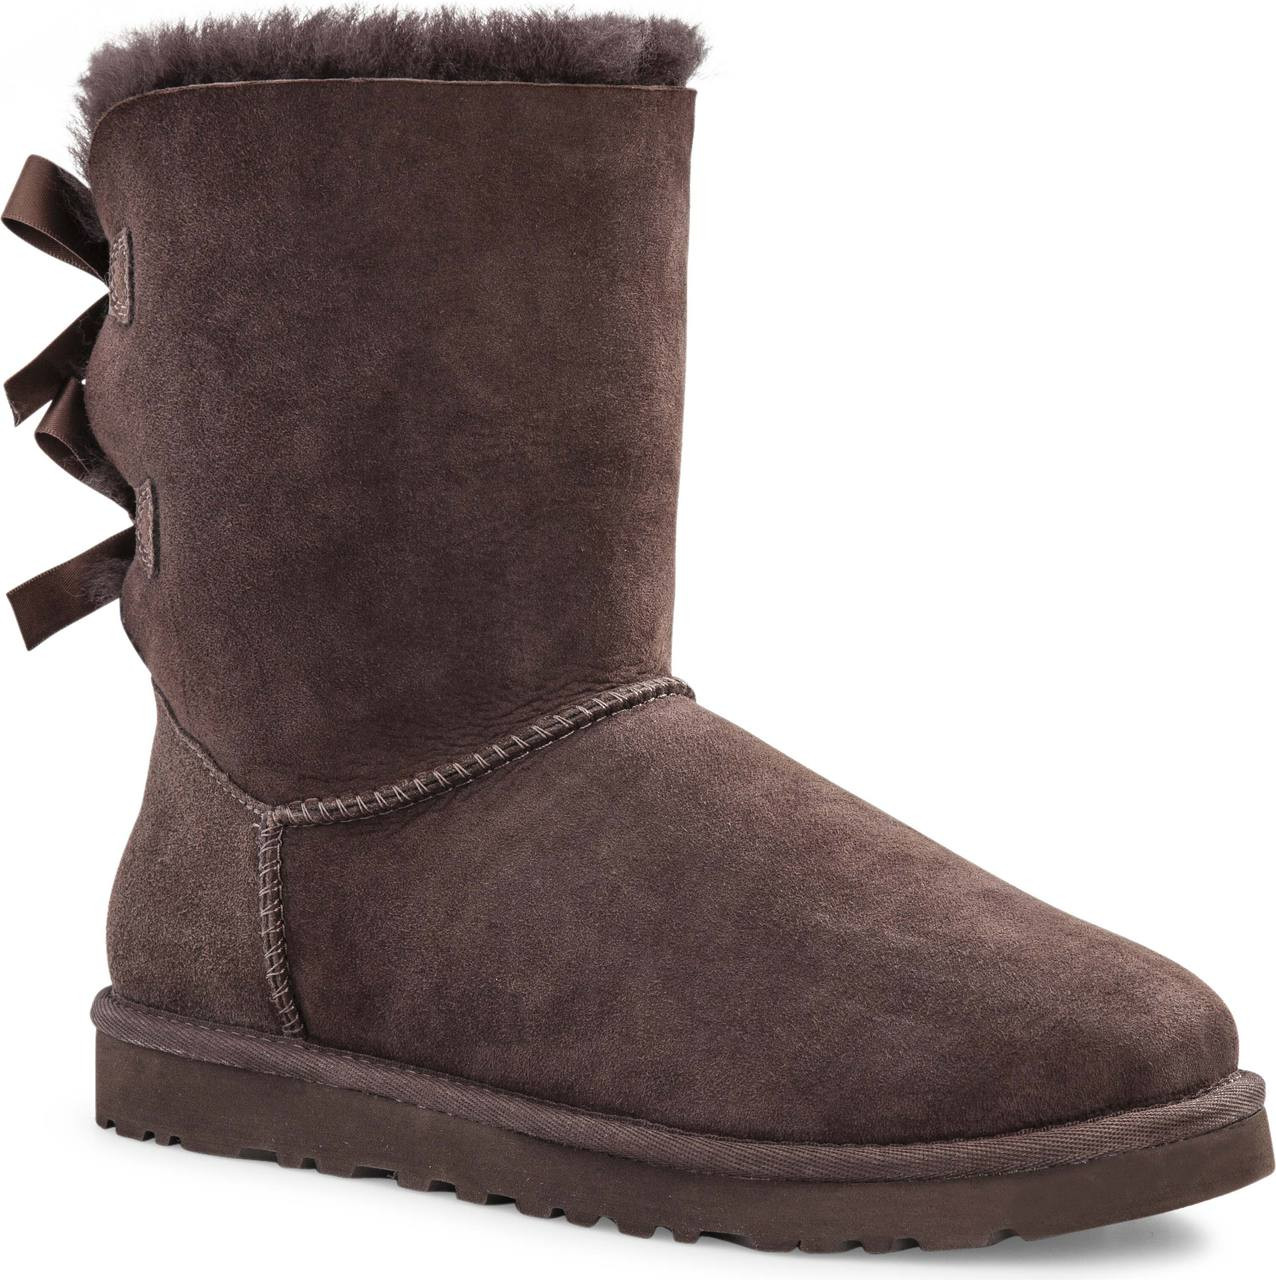 ... ugg australia womens bailey bow. bilberry. bilberry black blue jay chestnut chocolate